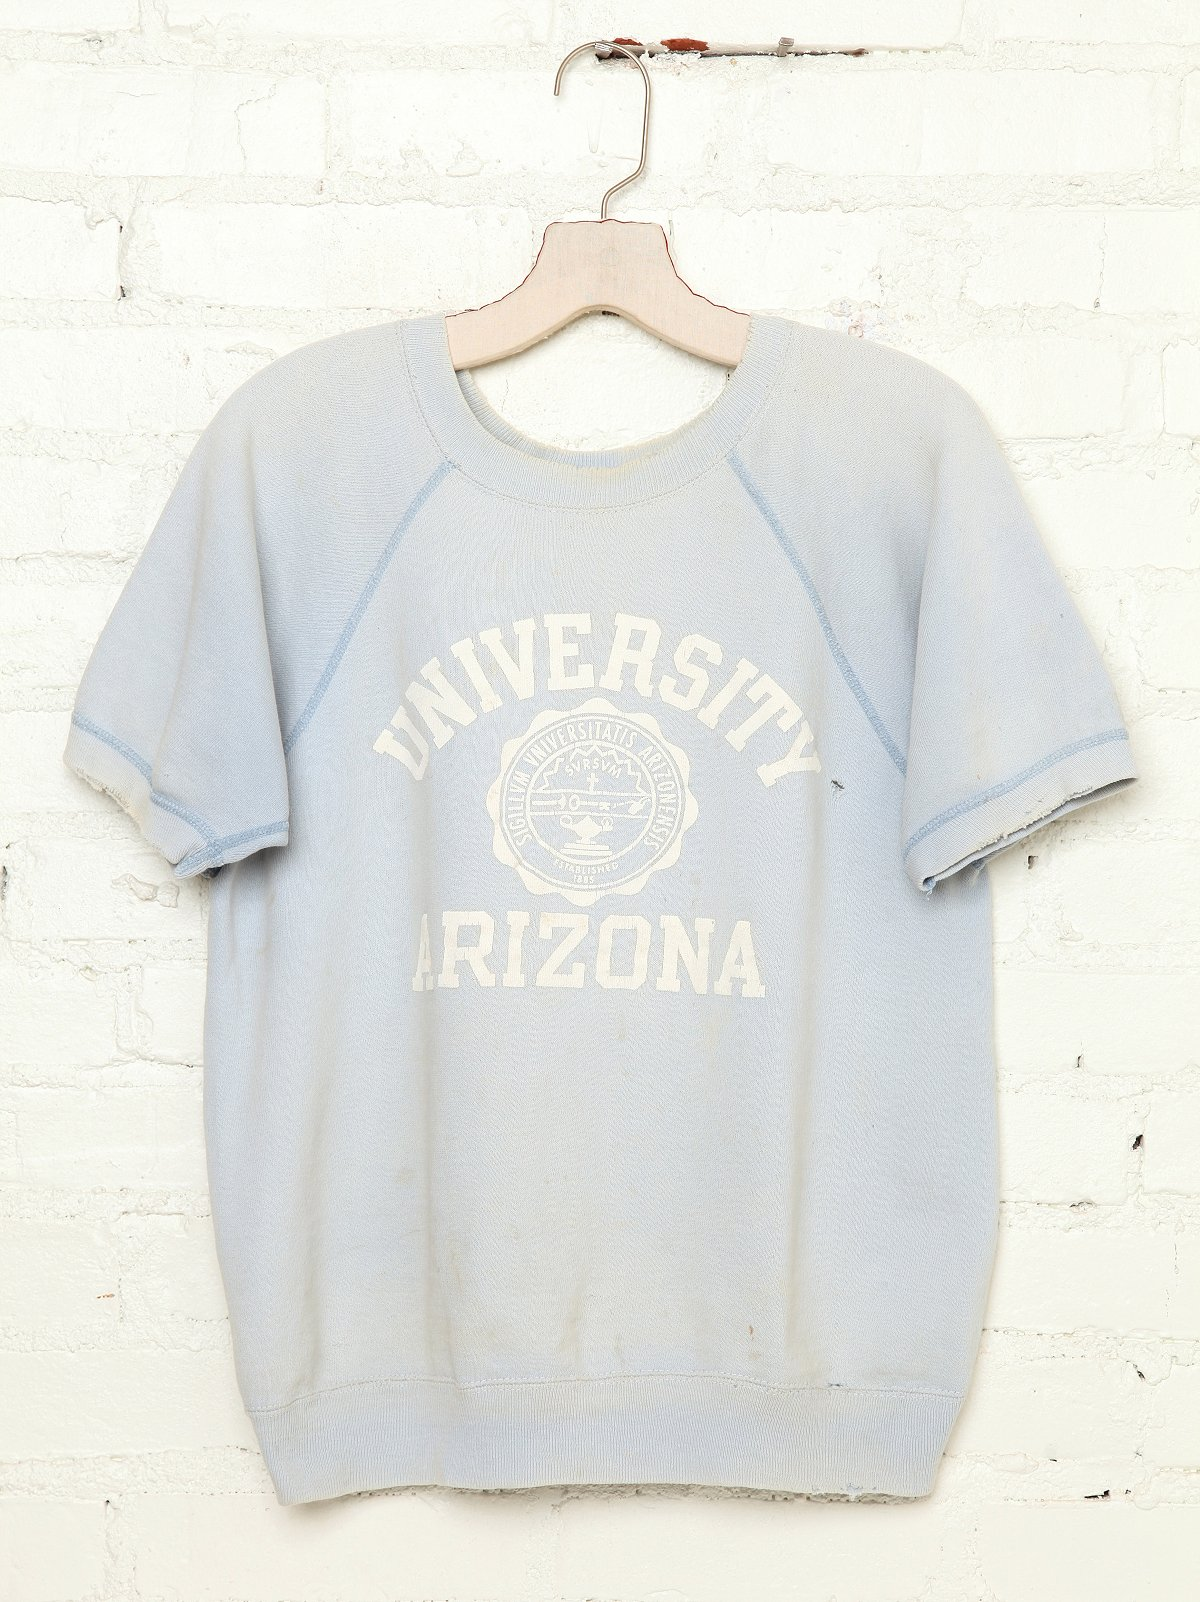 Vintage University of Arizona Sweatshirt